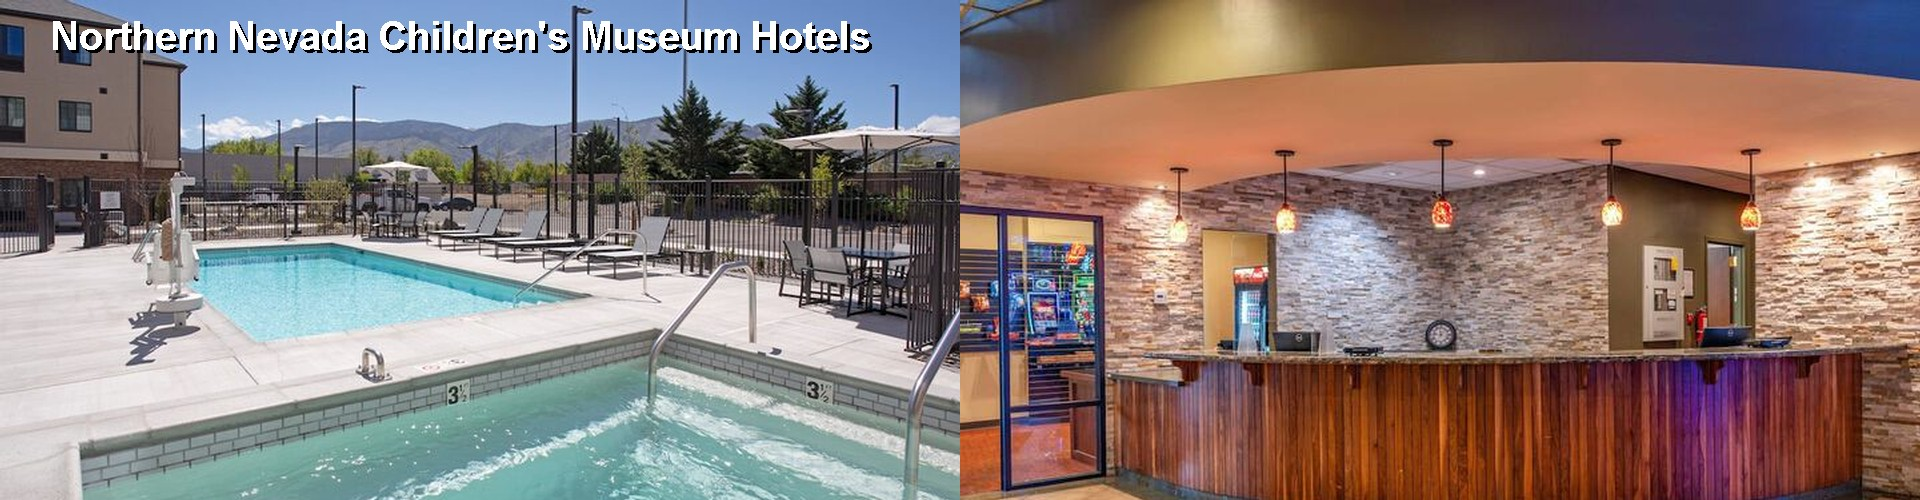 5 Best Hotels near Northern Nevada Children's Museum